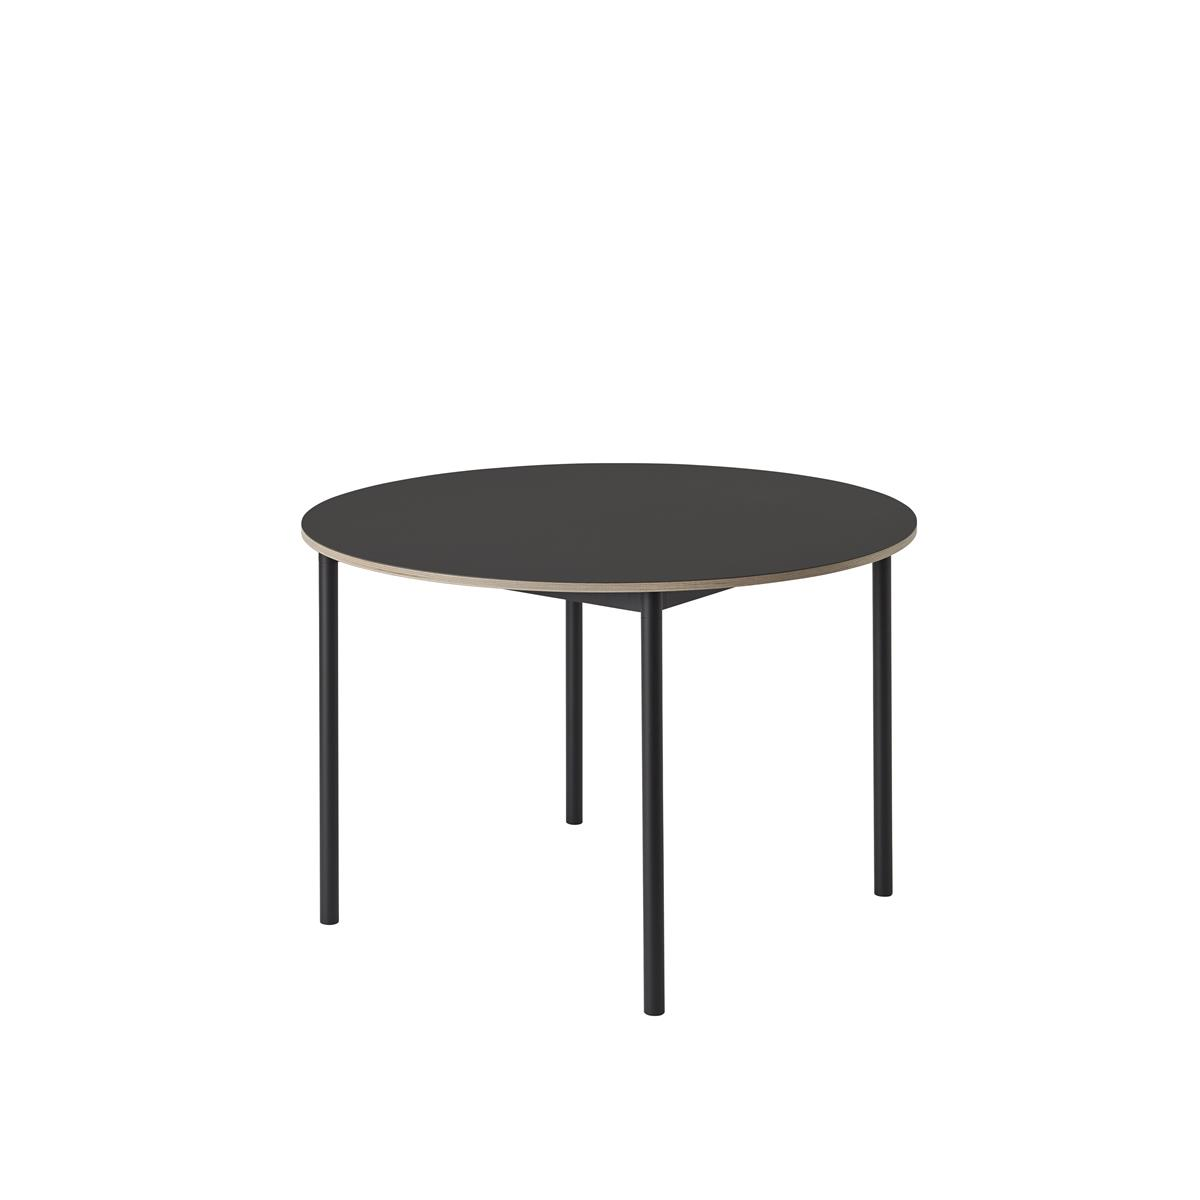 Base Table / Ø 110 Black/Black Linoleum/Plywood